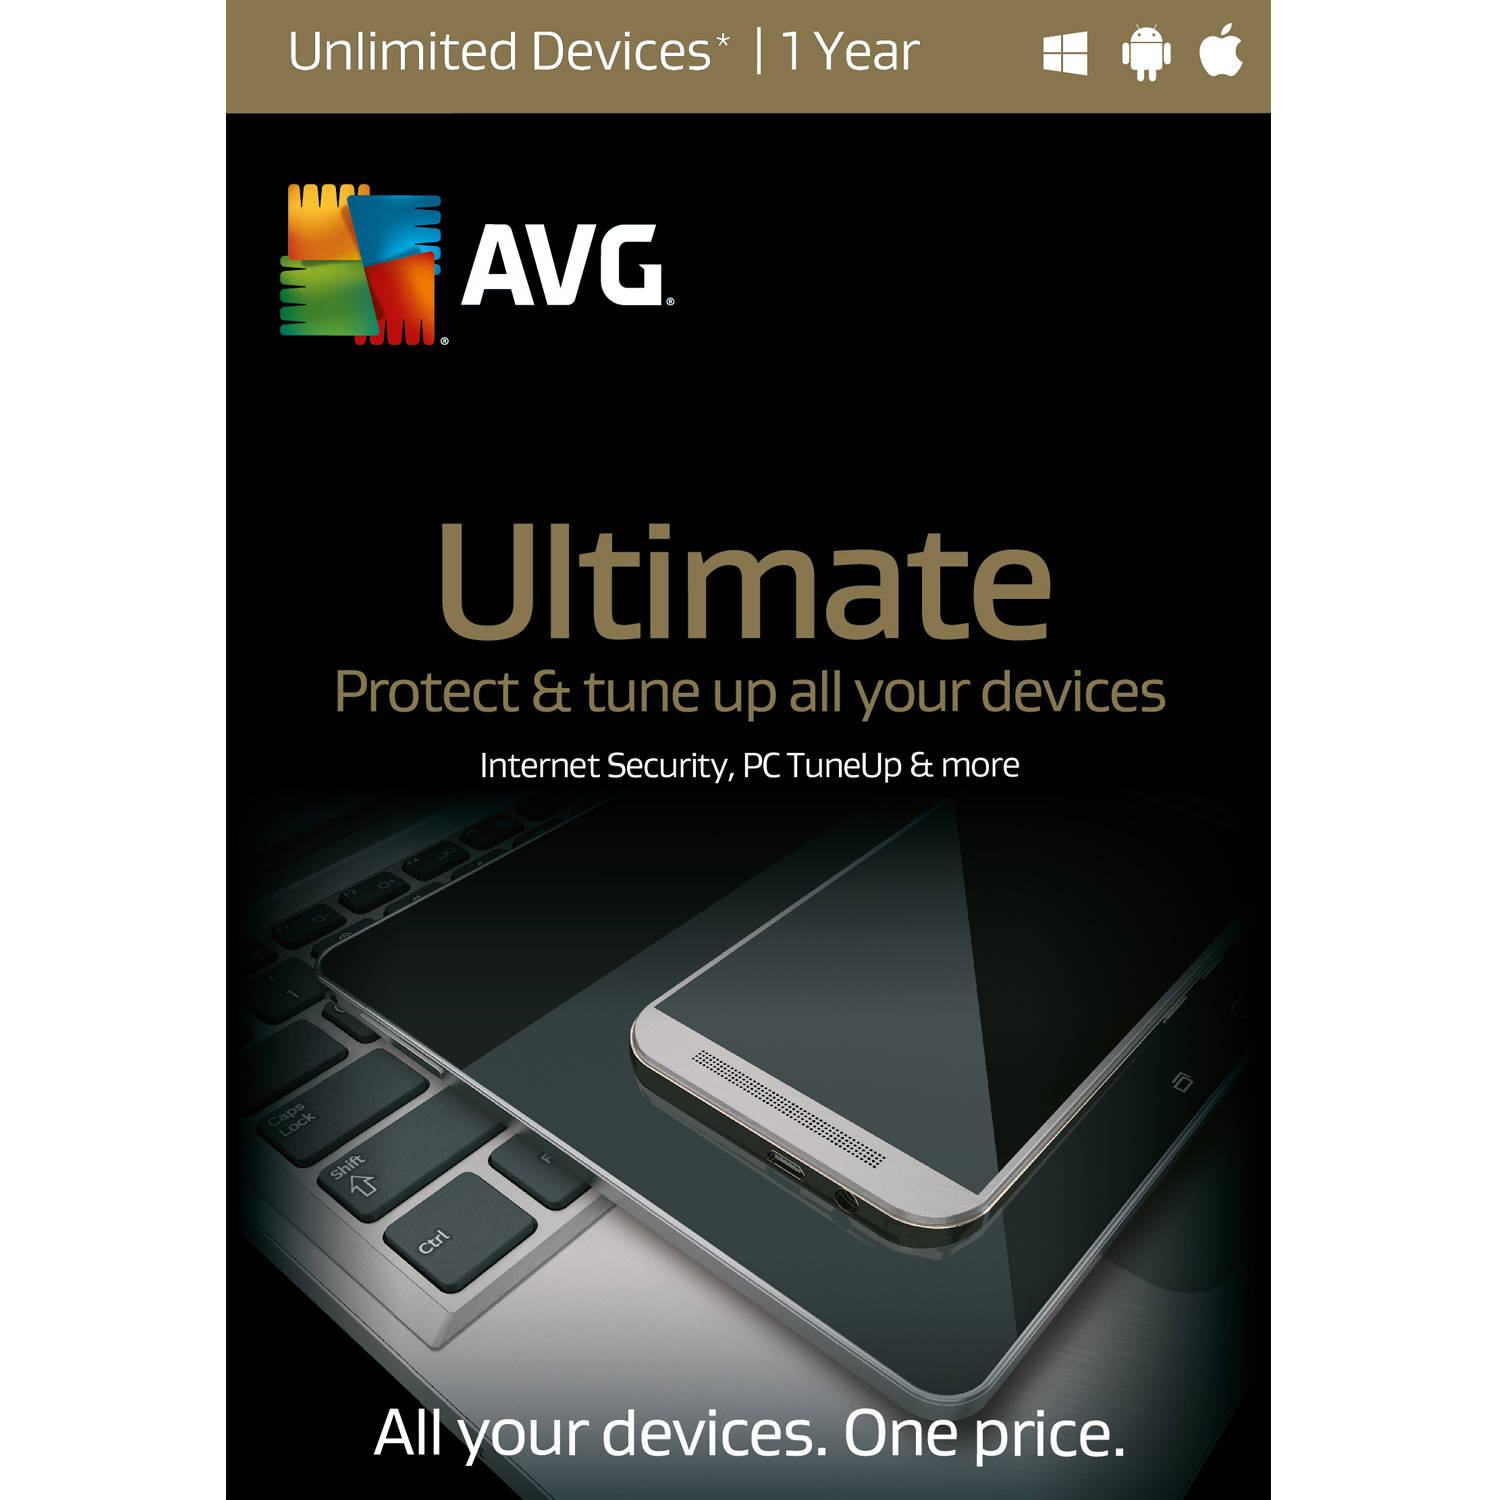 AVG Ultimate Software, 1 Year